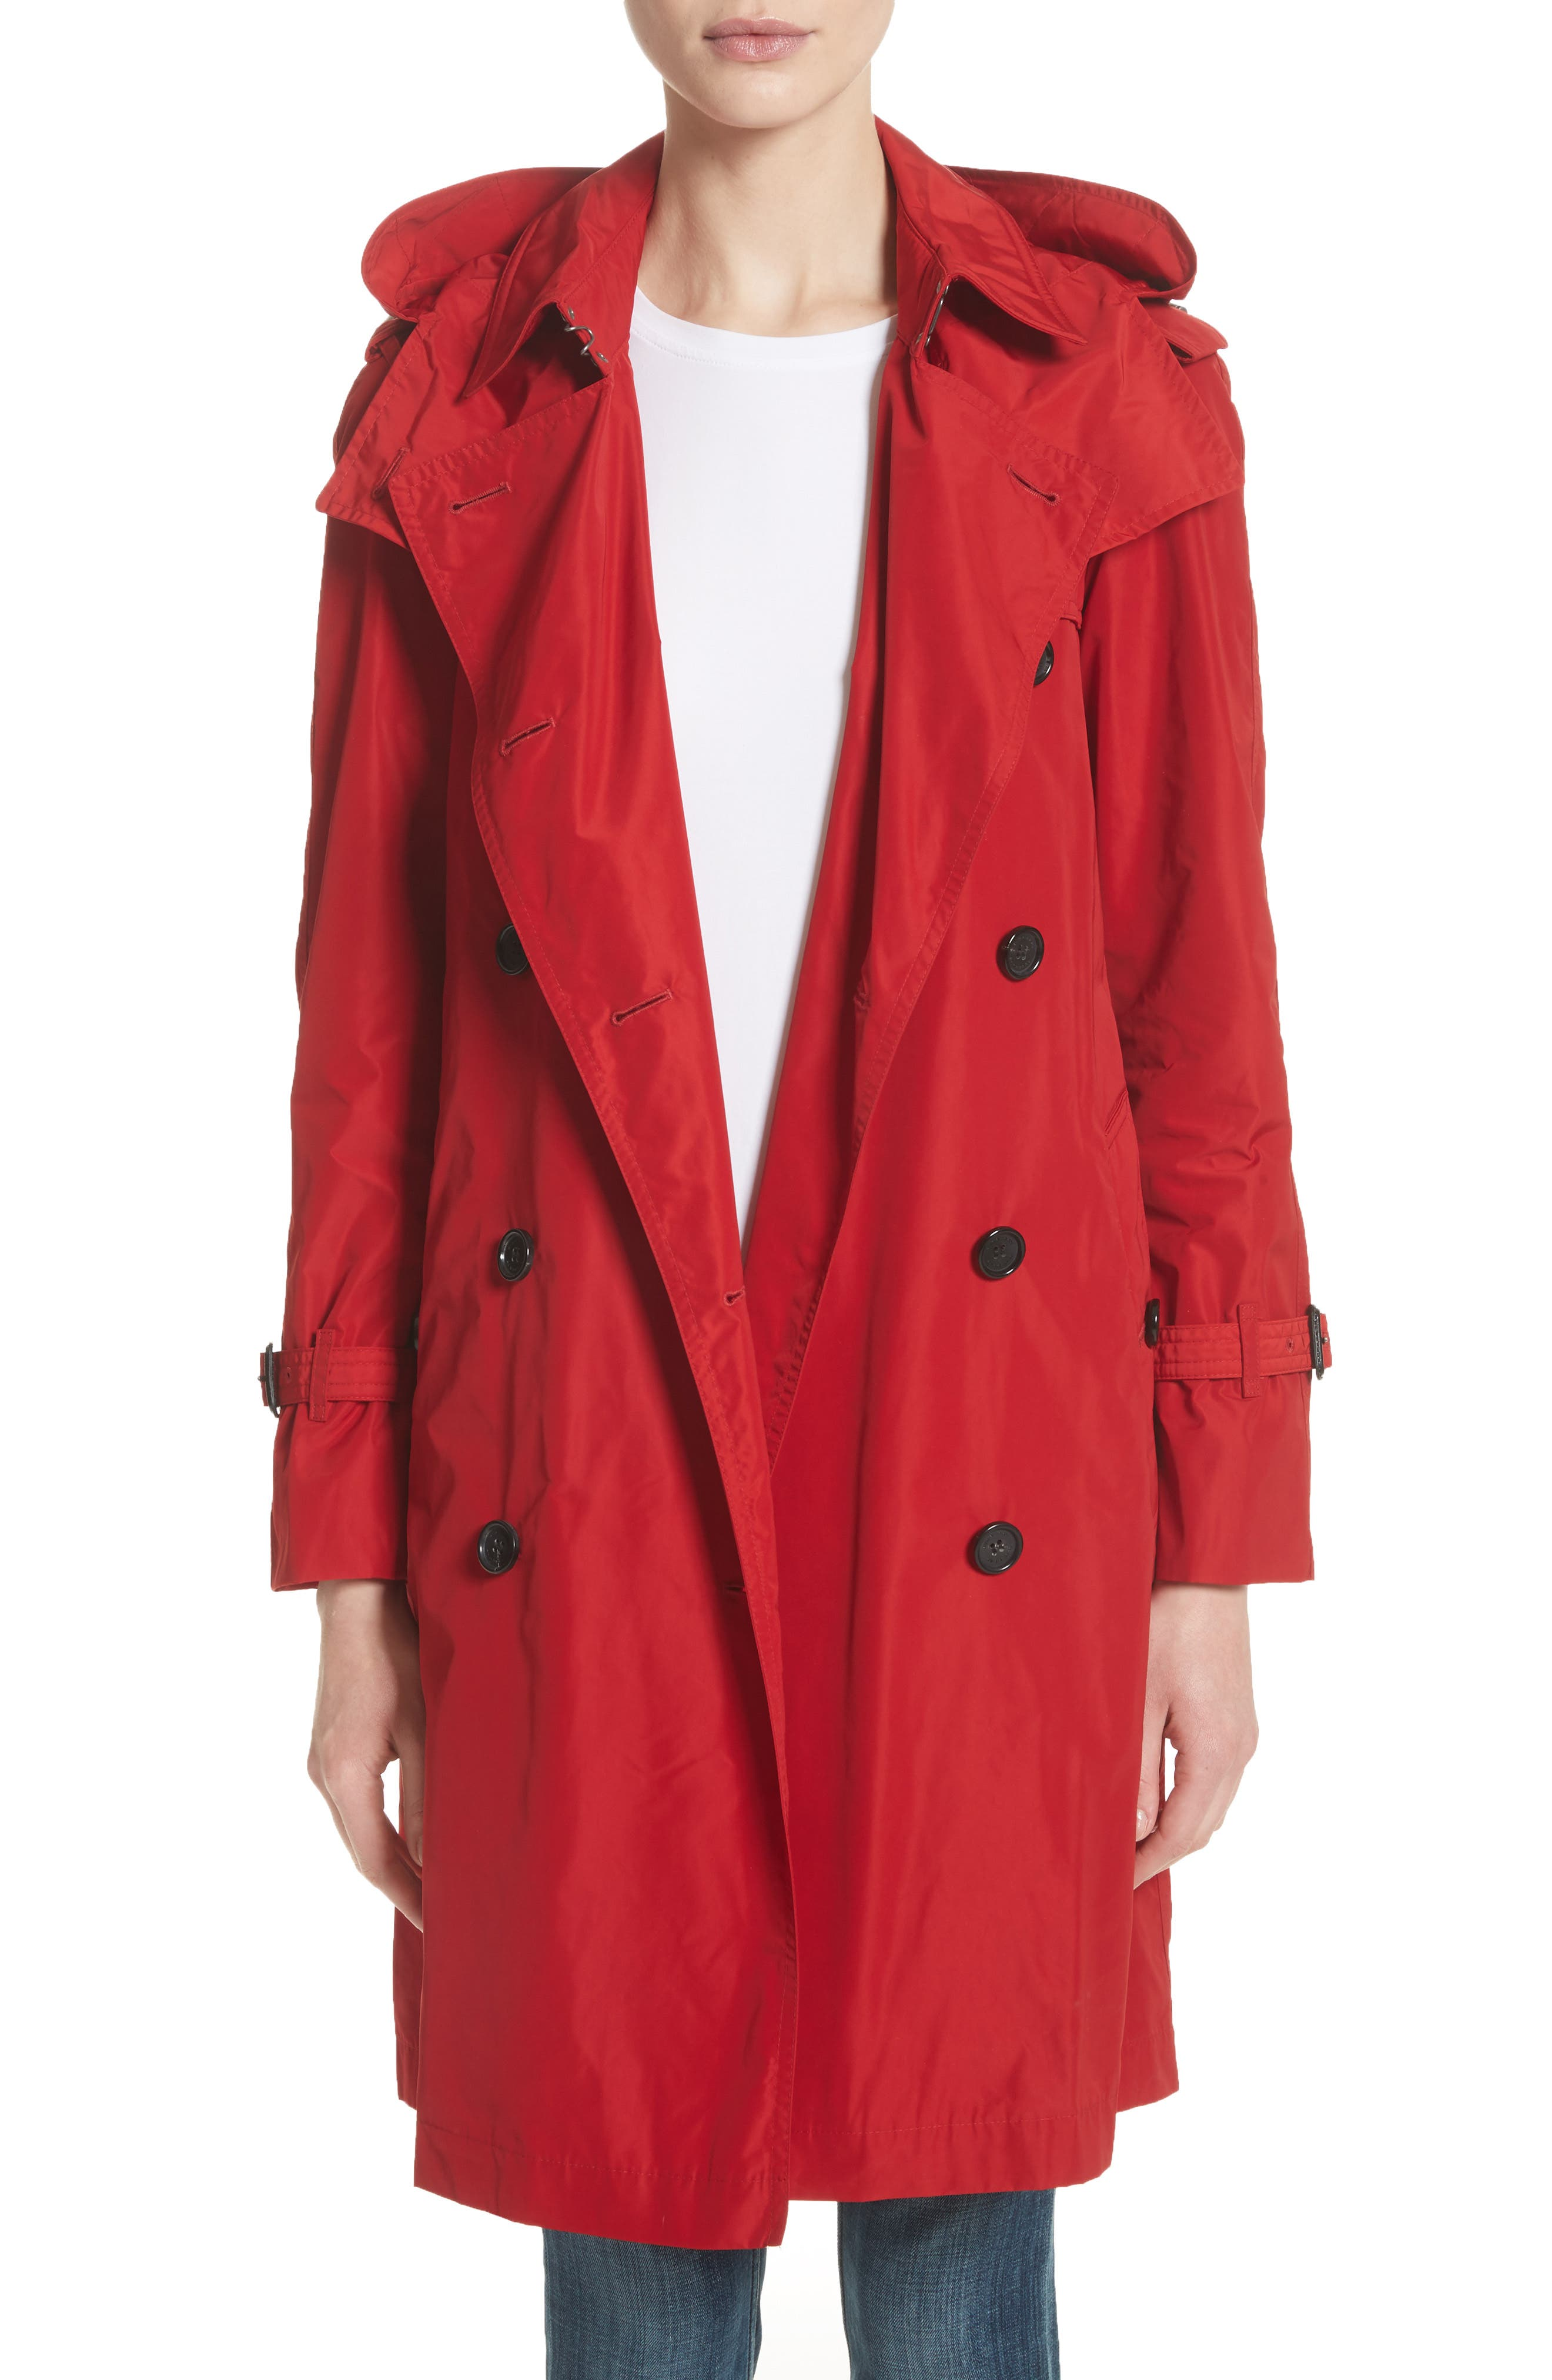 Amberford Taffeta Trench Coat with Detachable Hood, Main, color, MILITARY RED